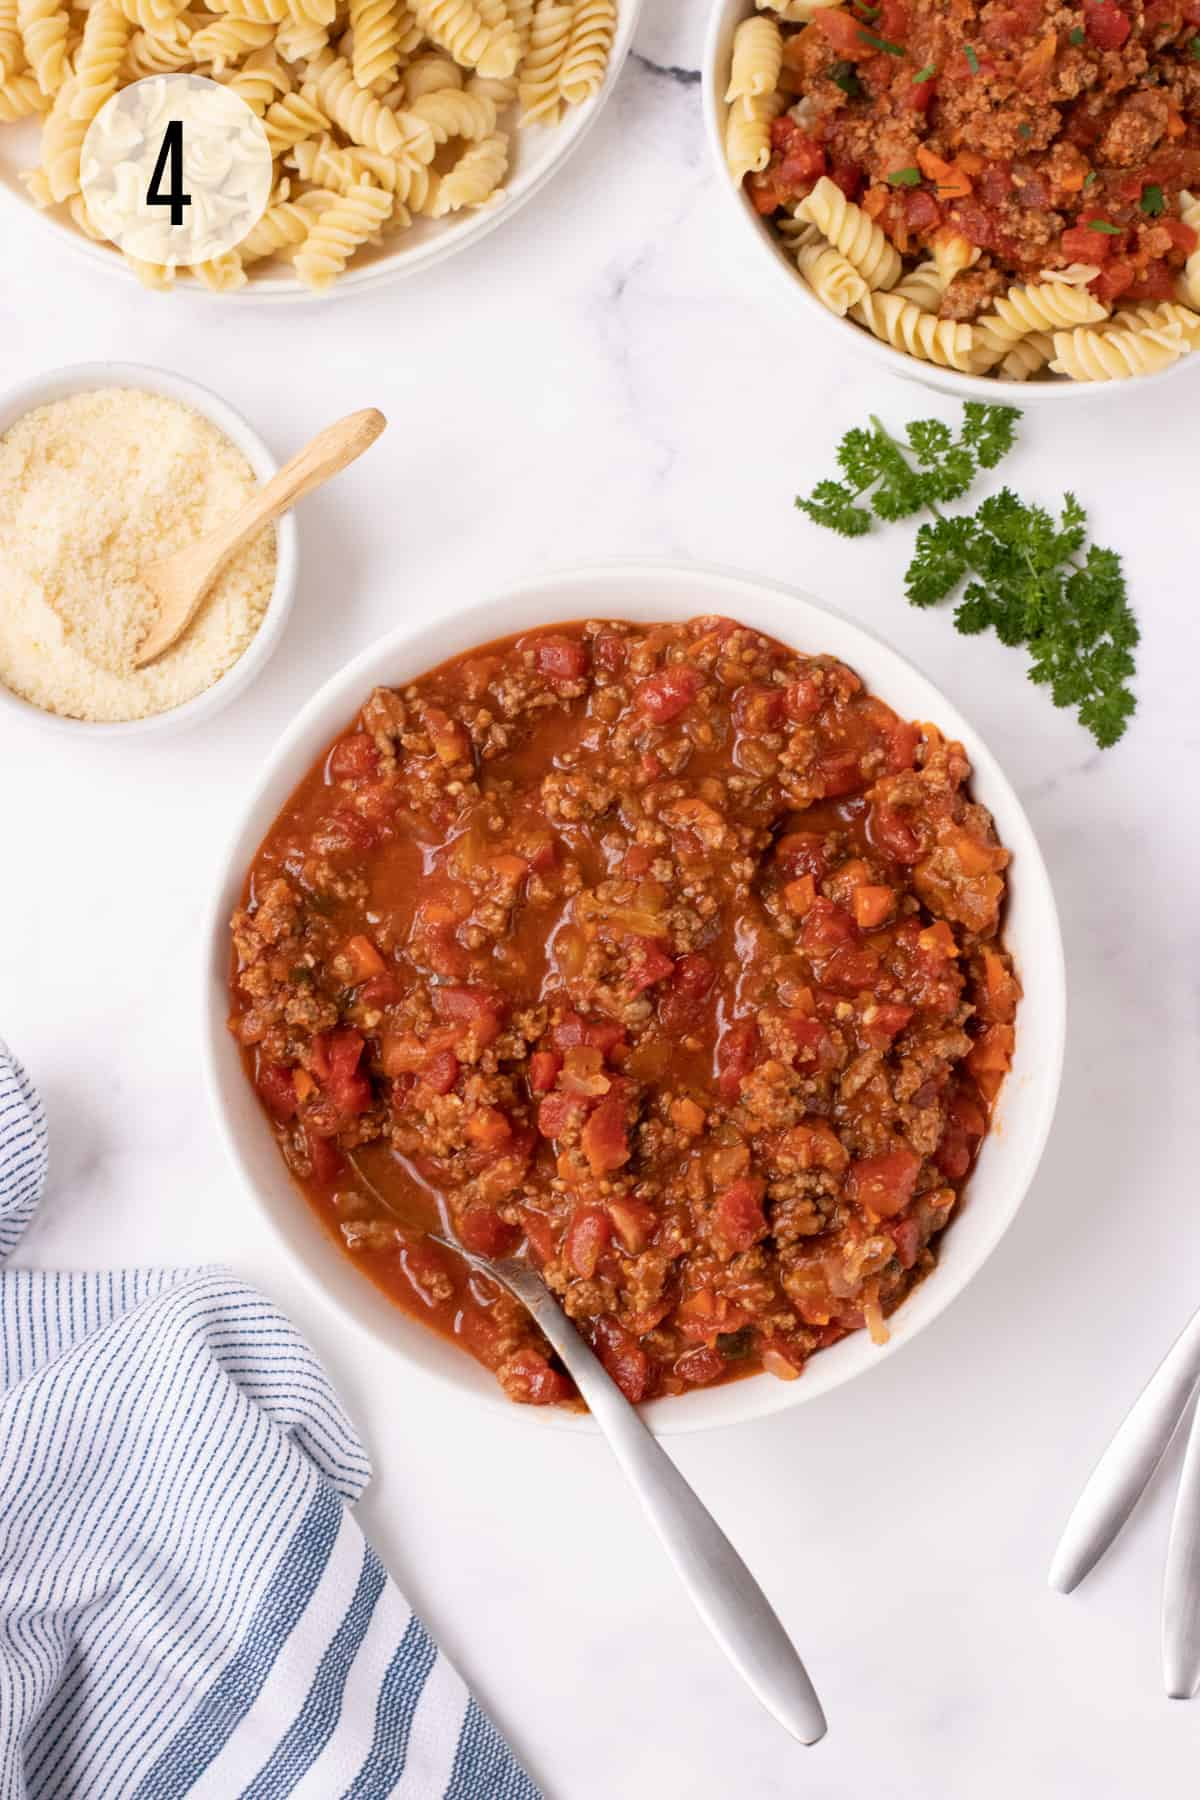 Bowl of chunky spaghetti meat sauce surrounded by fresh parsley and bowls of grated Parmesan, fusilli pasta and pasta with sauce and blue & white towel in lower left.